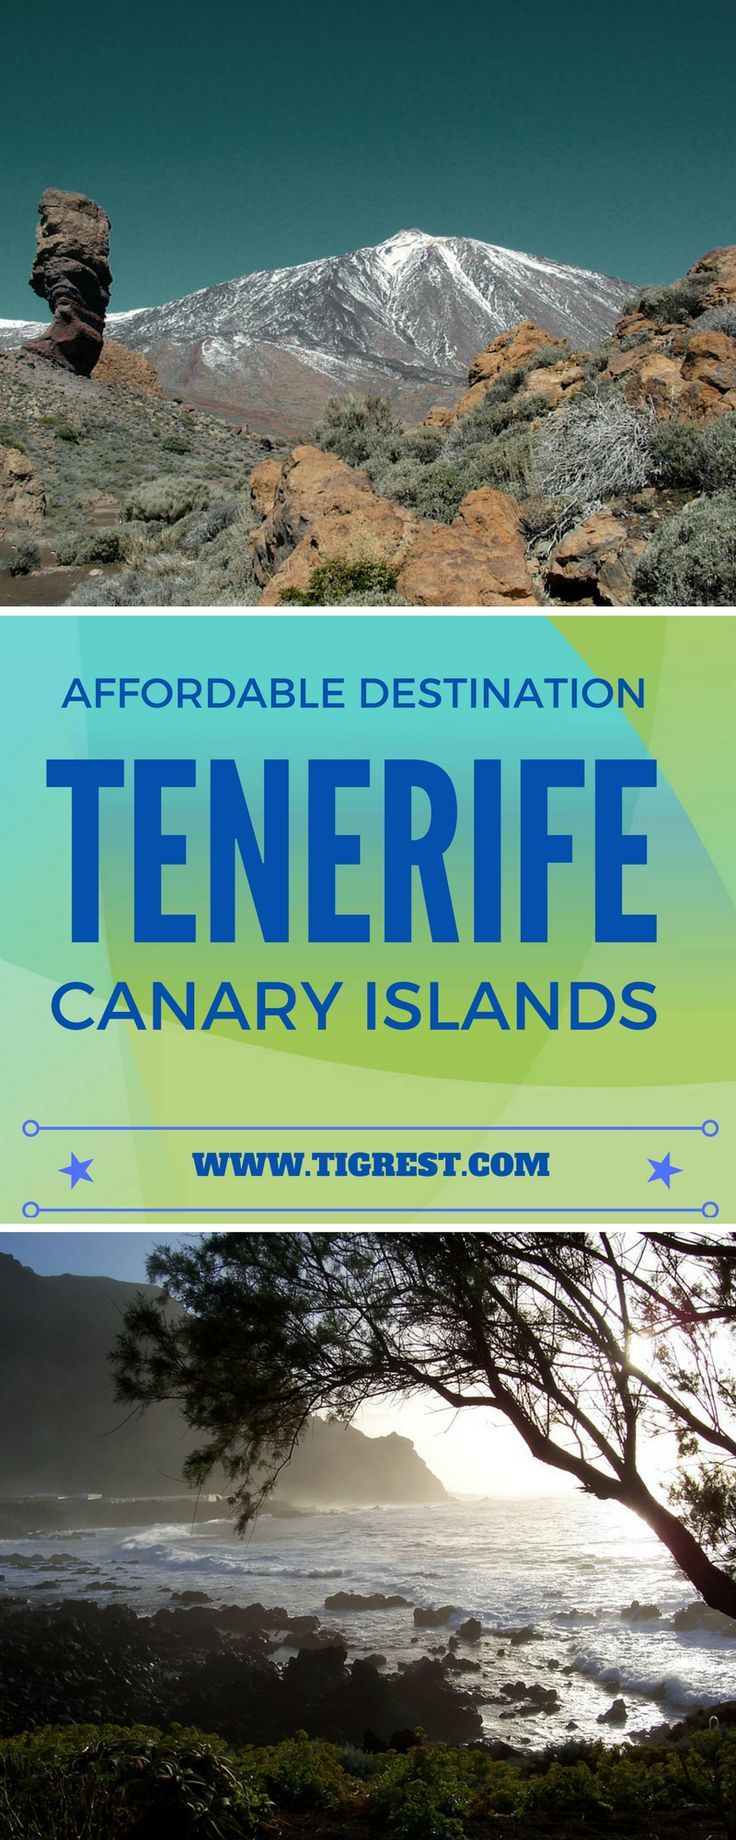 Tenerife (Canary Islands) is a great holiday destination with year round sunny weather. It's popular among tourists and has a lot to offer: